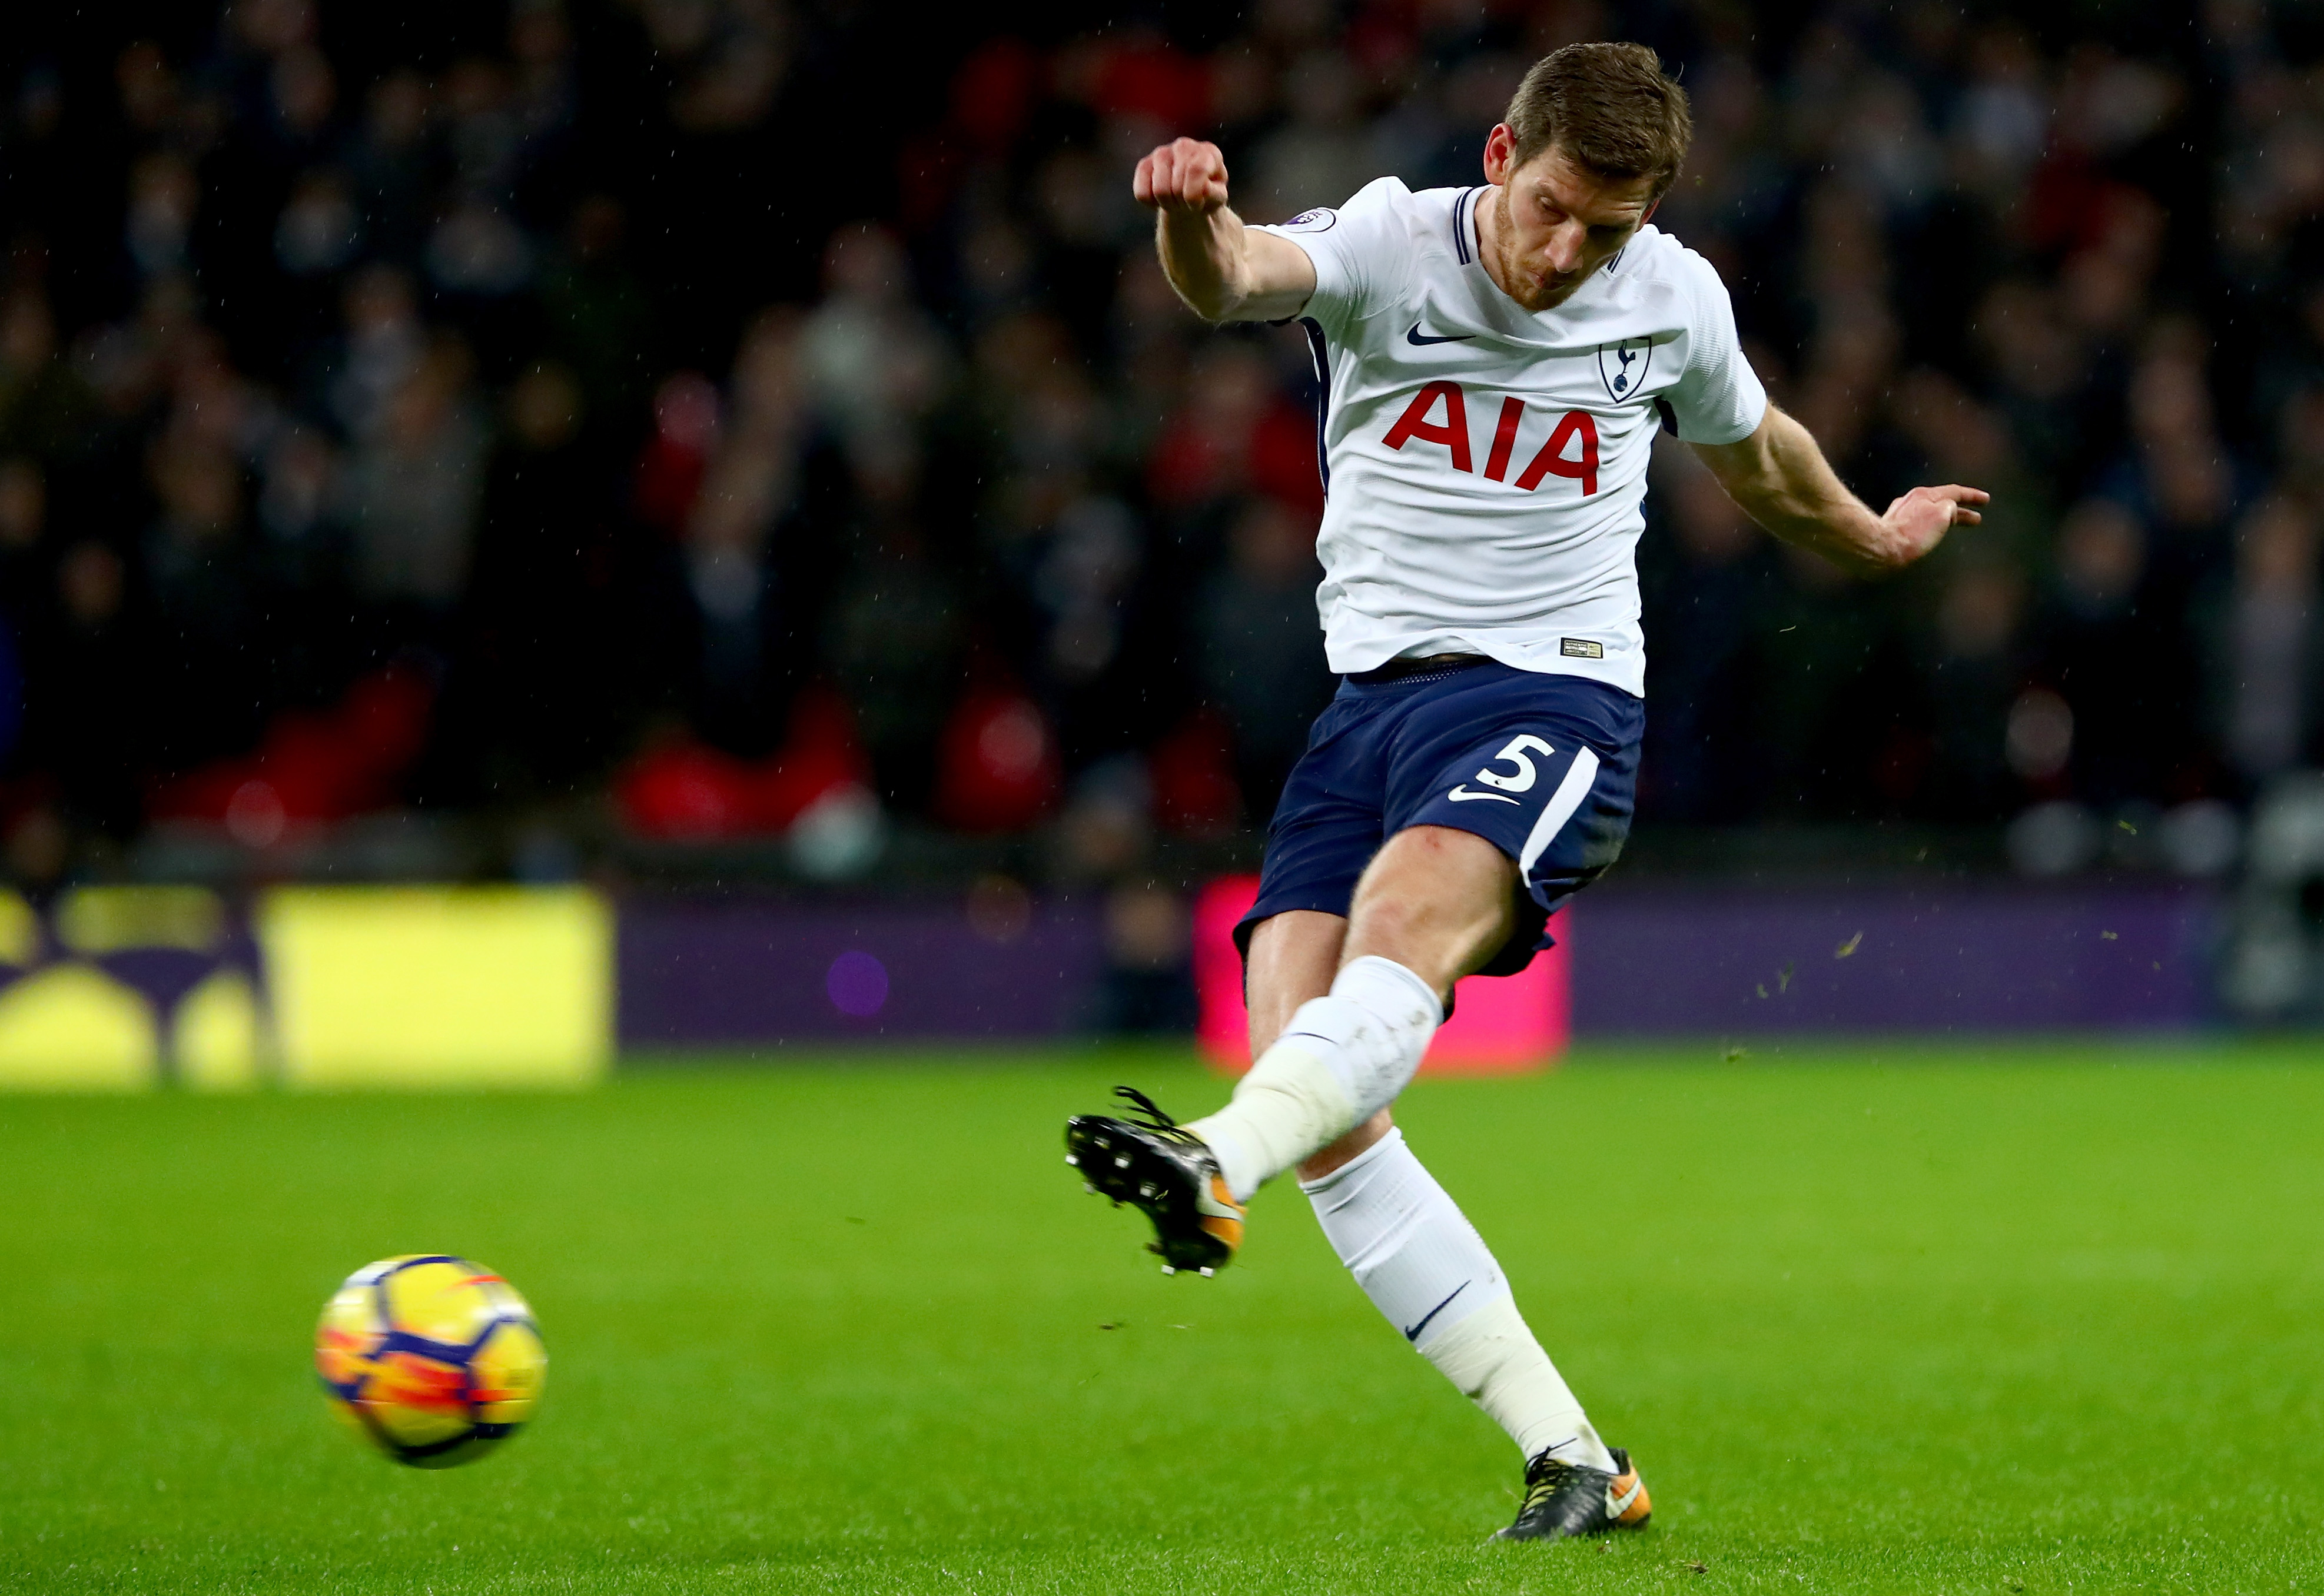 We should have scored more, says Spurs match-winner Kane